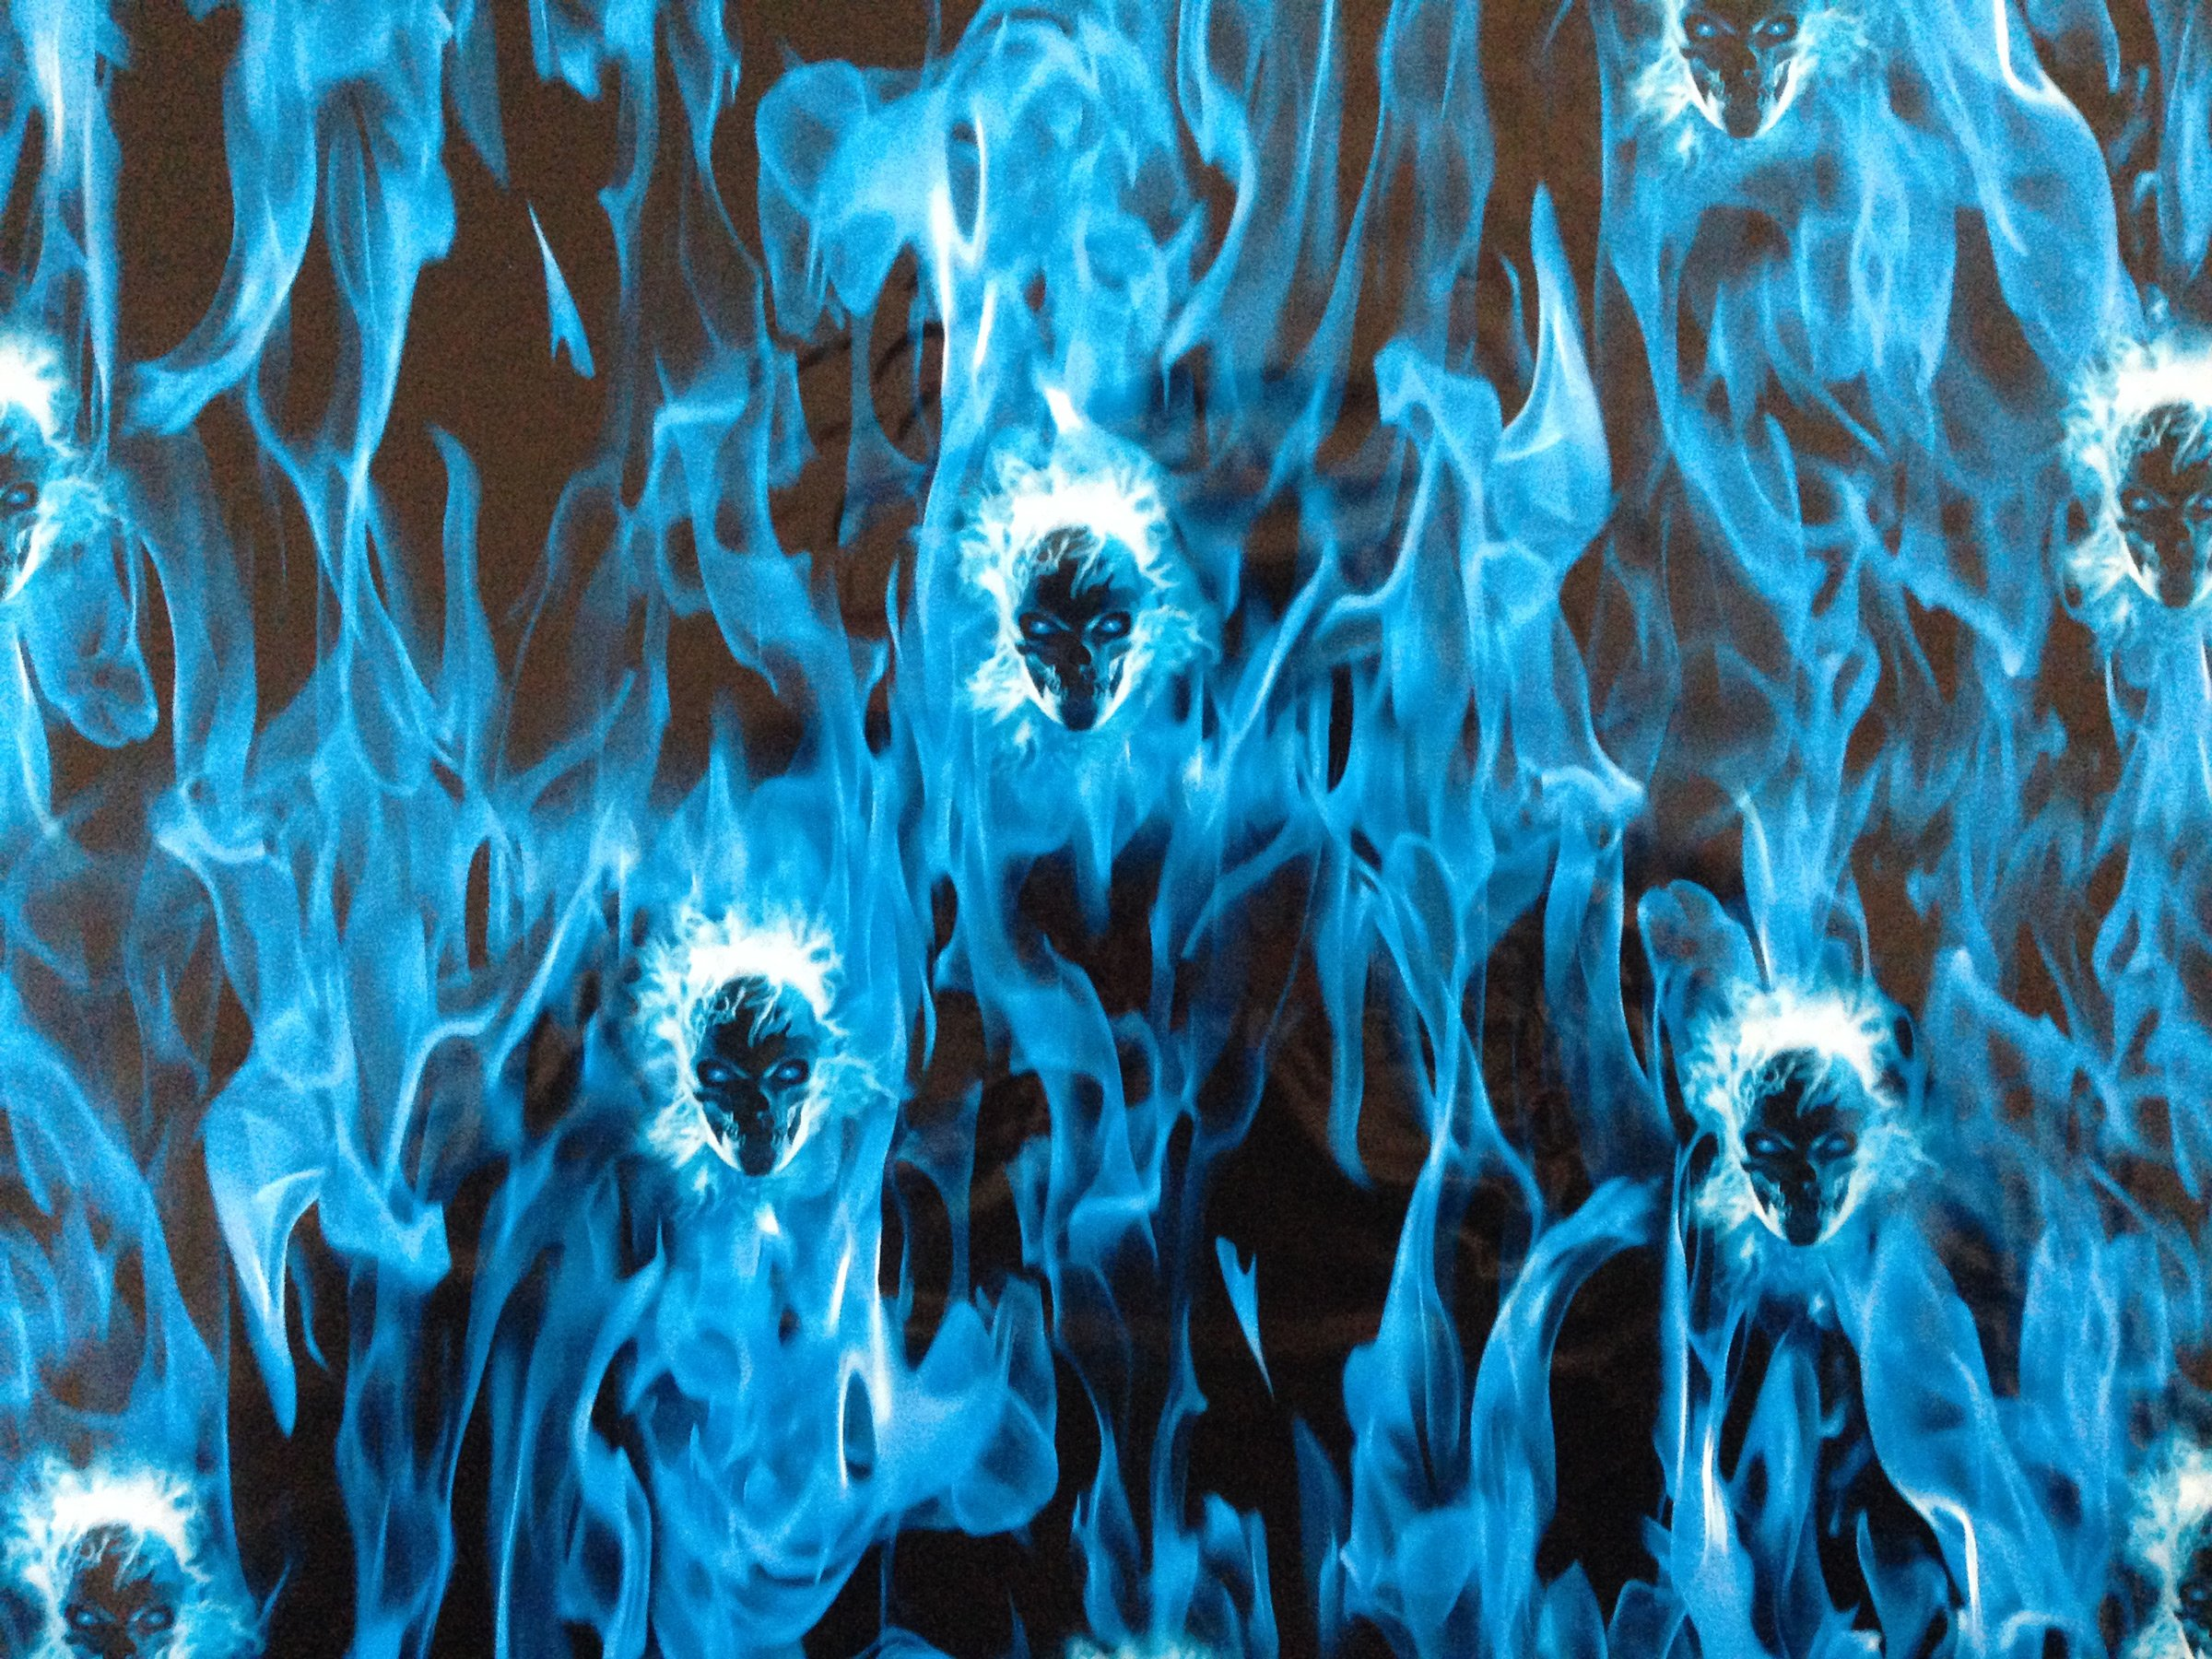 blue flames skull flame - photo #22